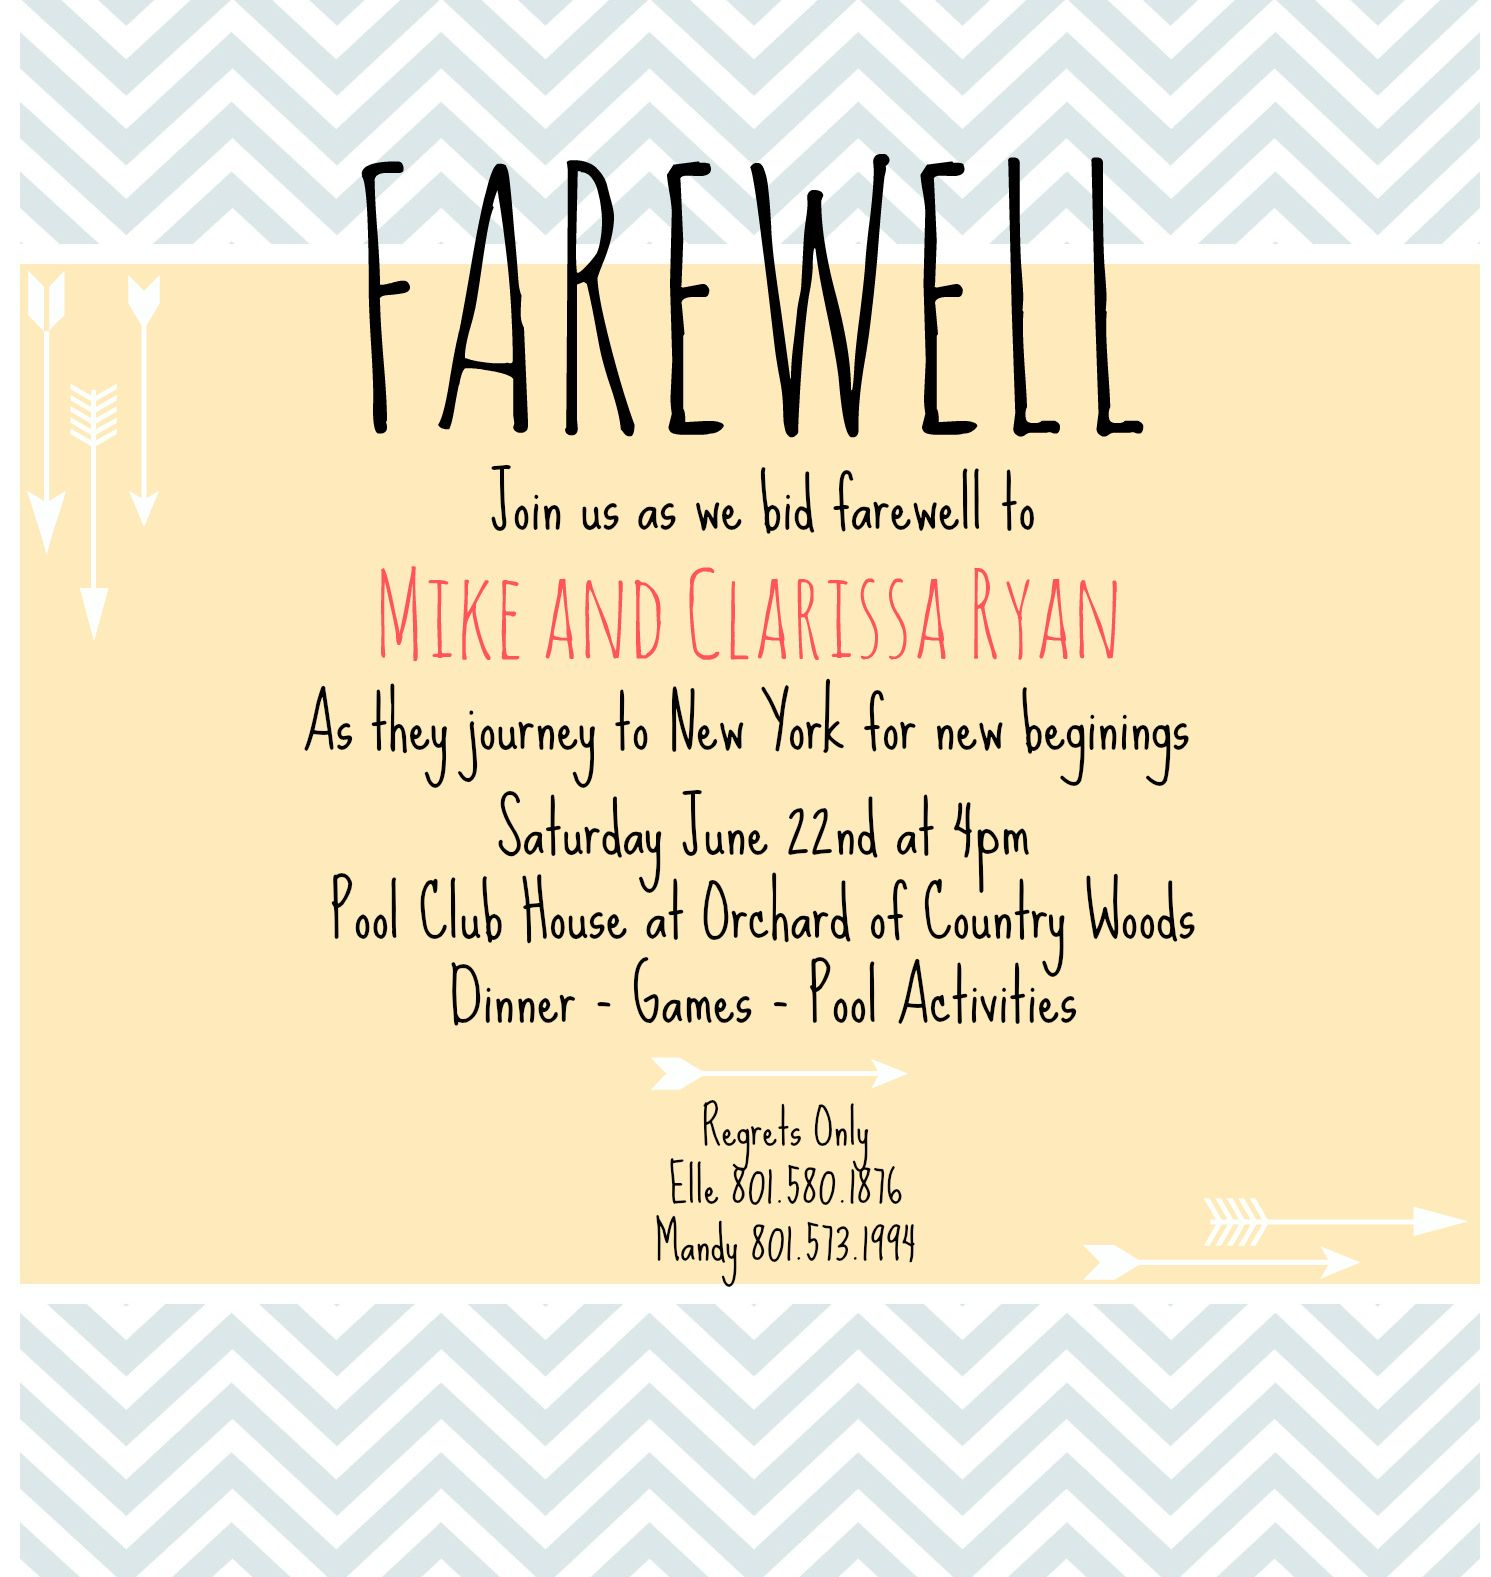 farewell invite | Picmonkey creations | Pinterest ...